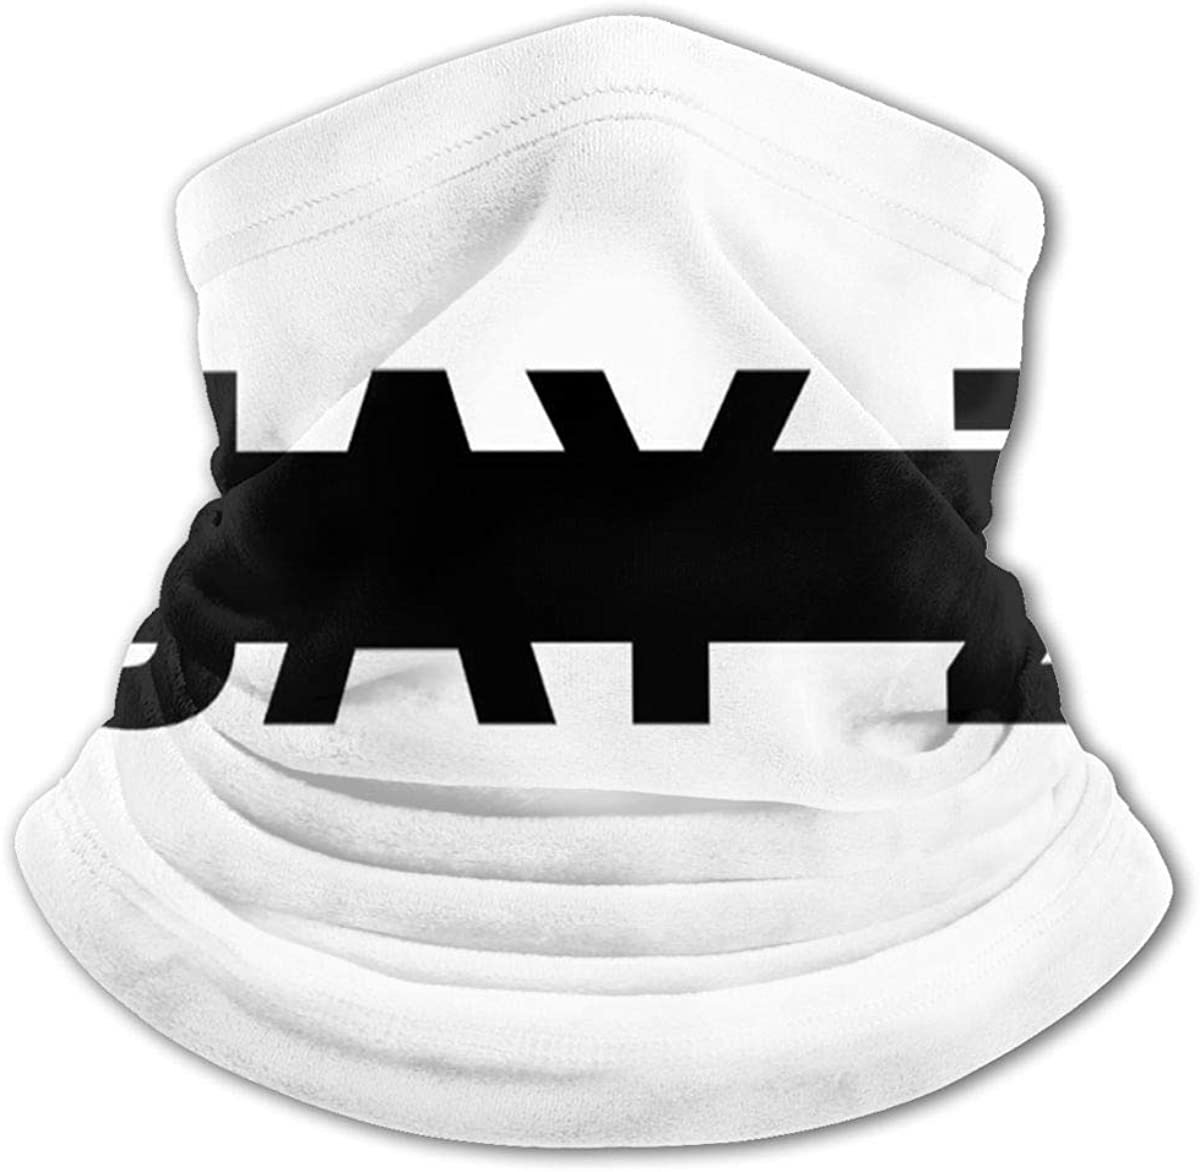 Cooling Neck Gaiters Face Cover for Boys Girls Outdoor - Scarf Jay-Z Bandana Black